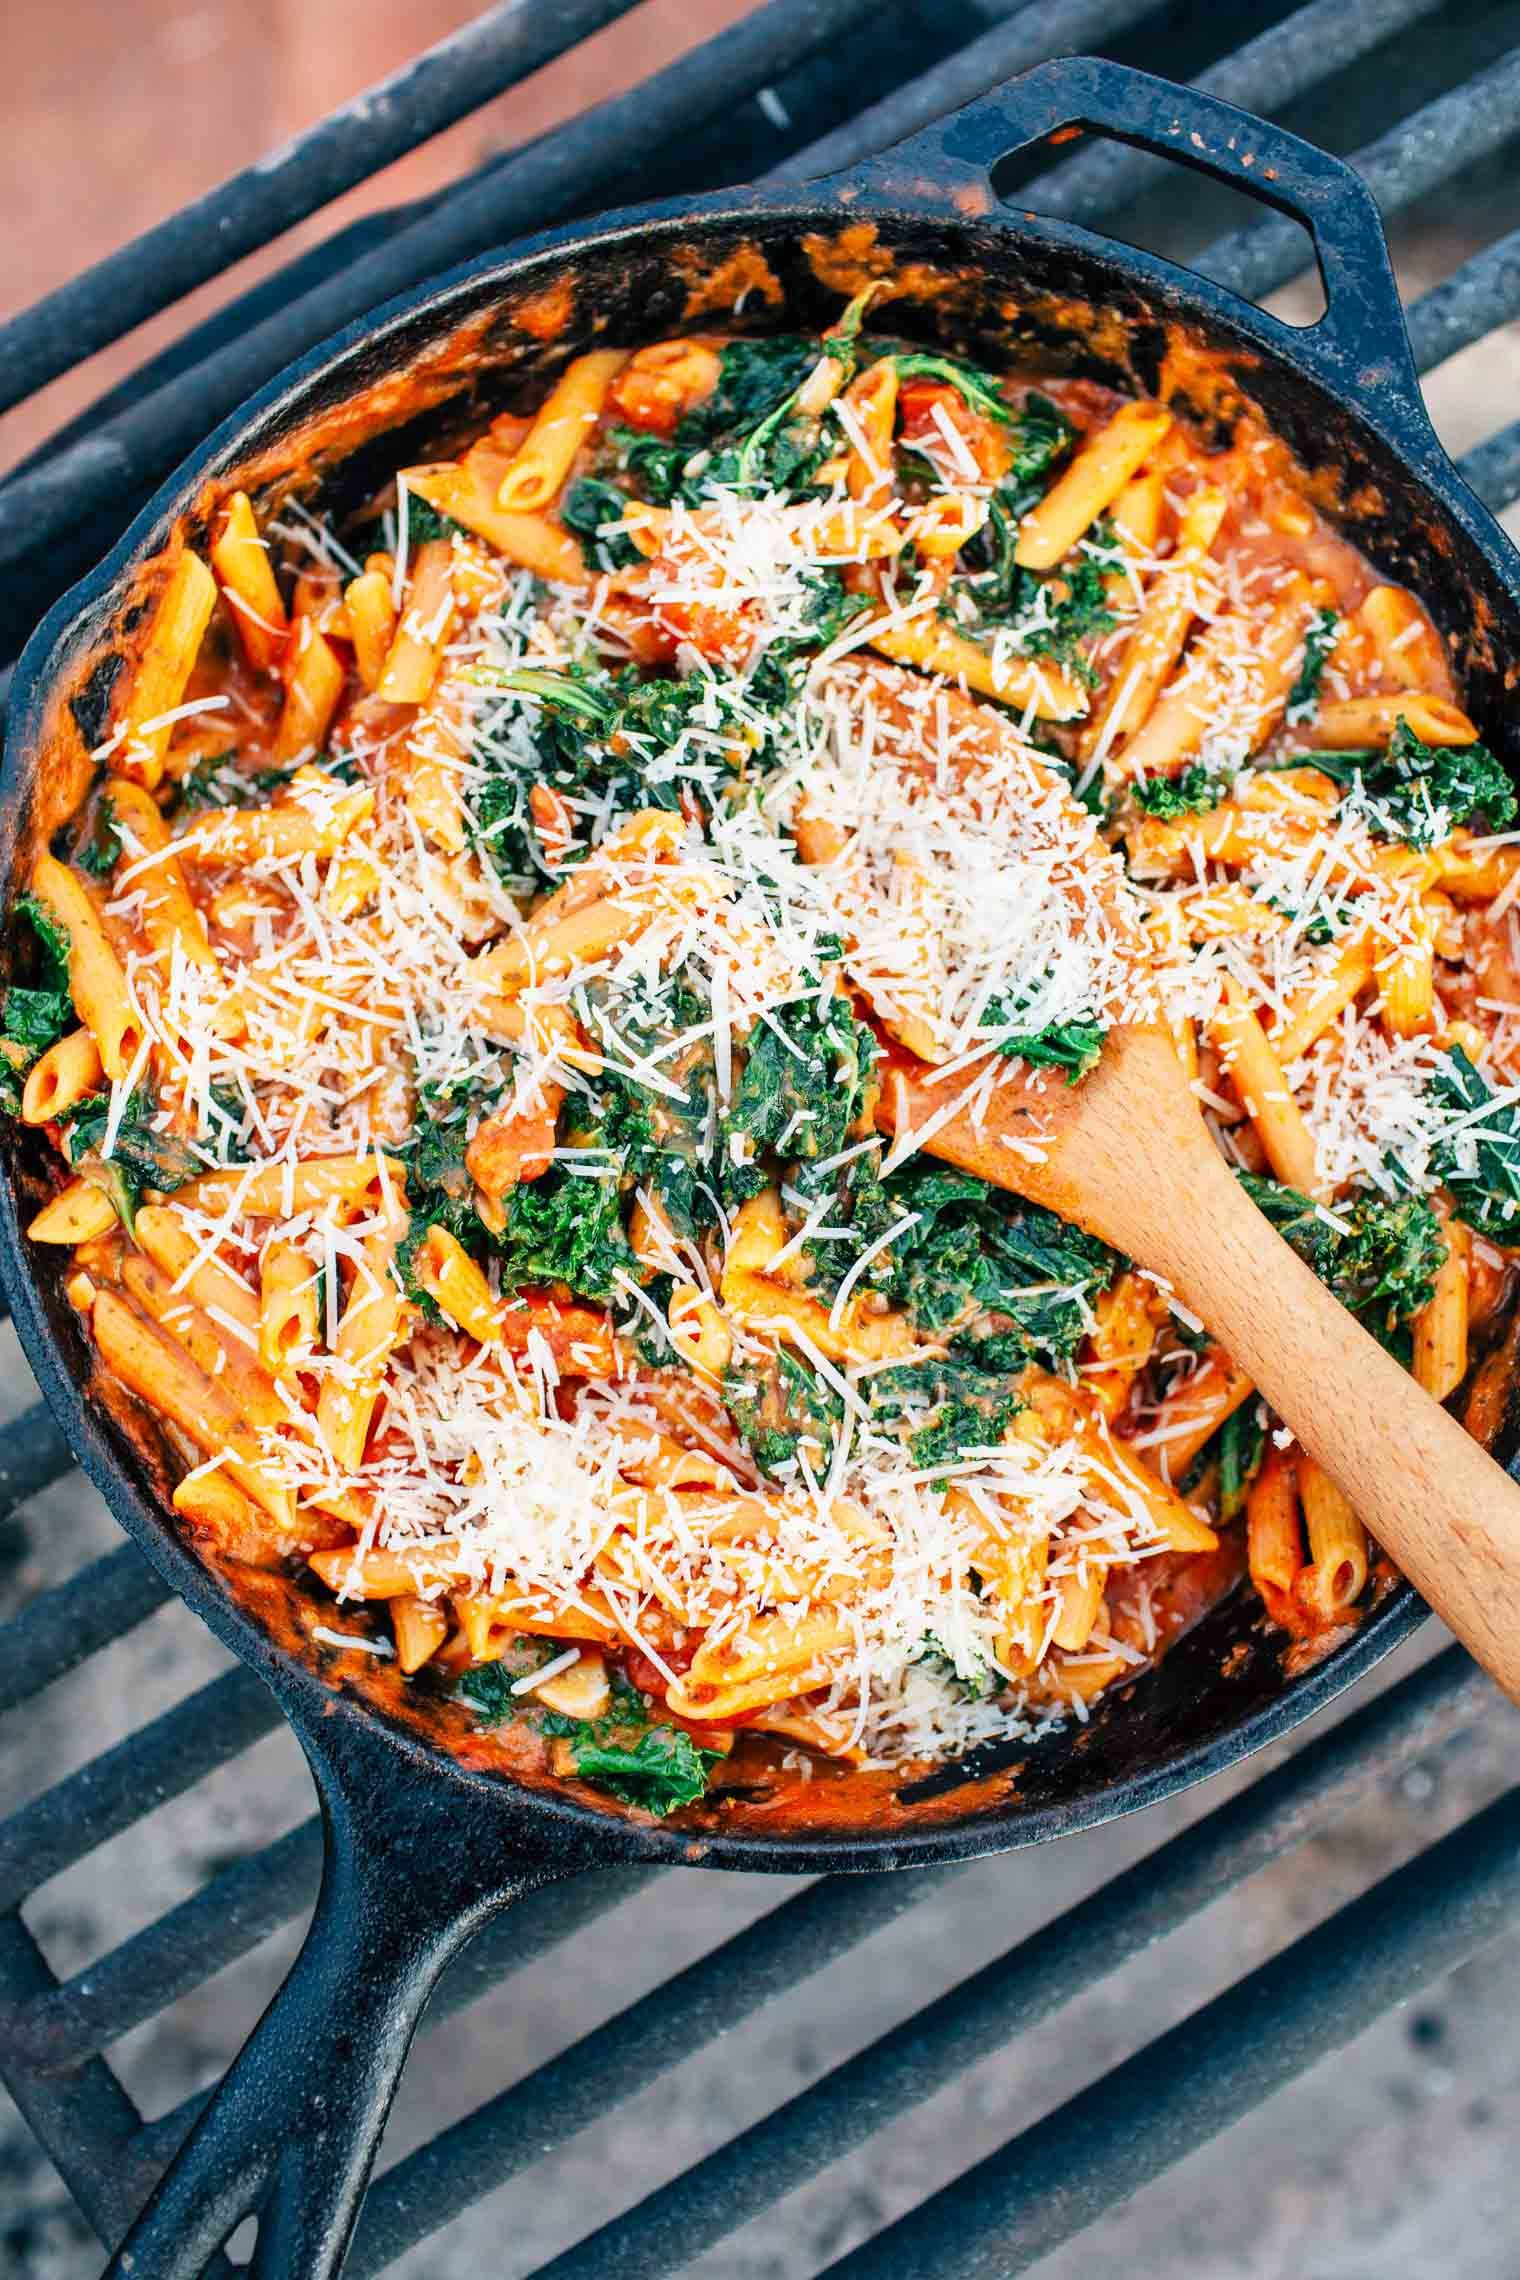 This One Pot Pasta Is An Easy Camping Meal That Delivers A Big Vegetarian Protein Punch One Pot 20 Min One Pot Vegetarian One Pot Pasta Recipes Protein Pasta